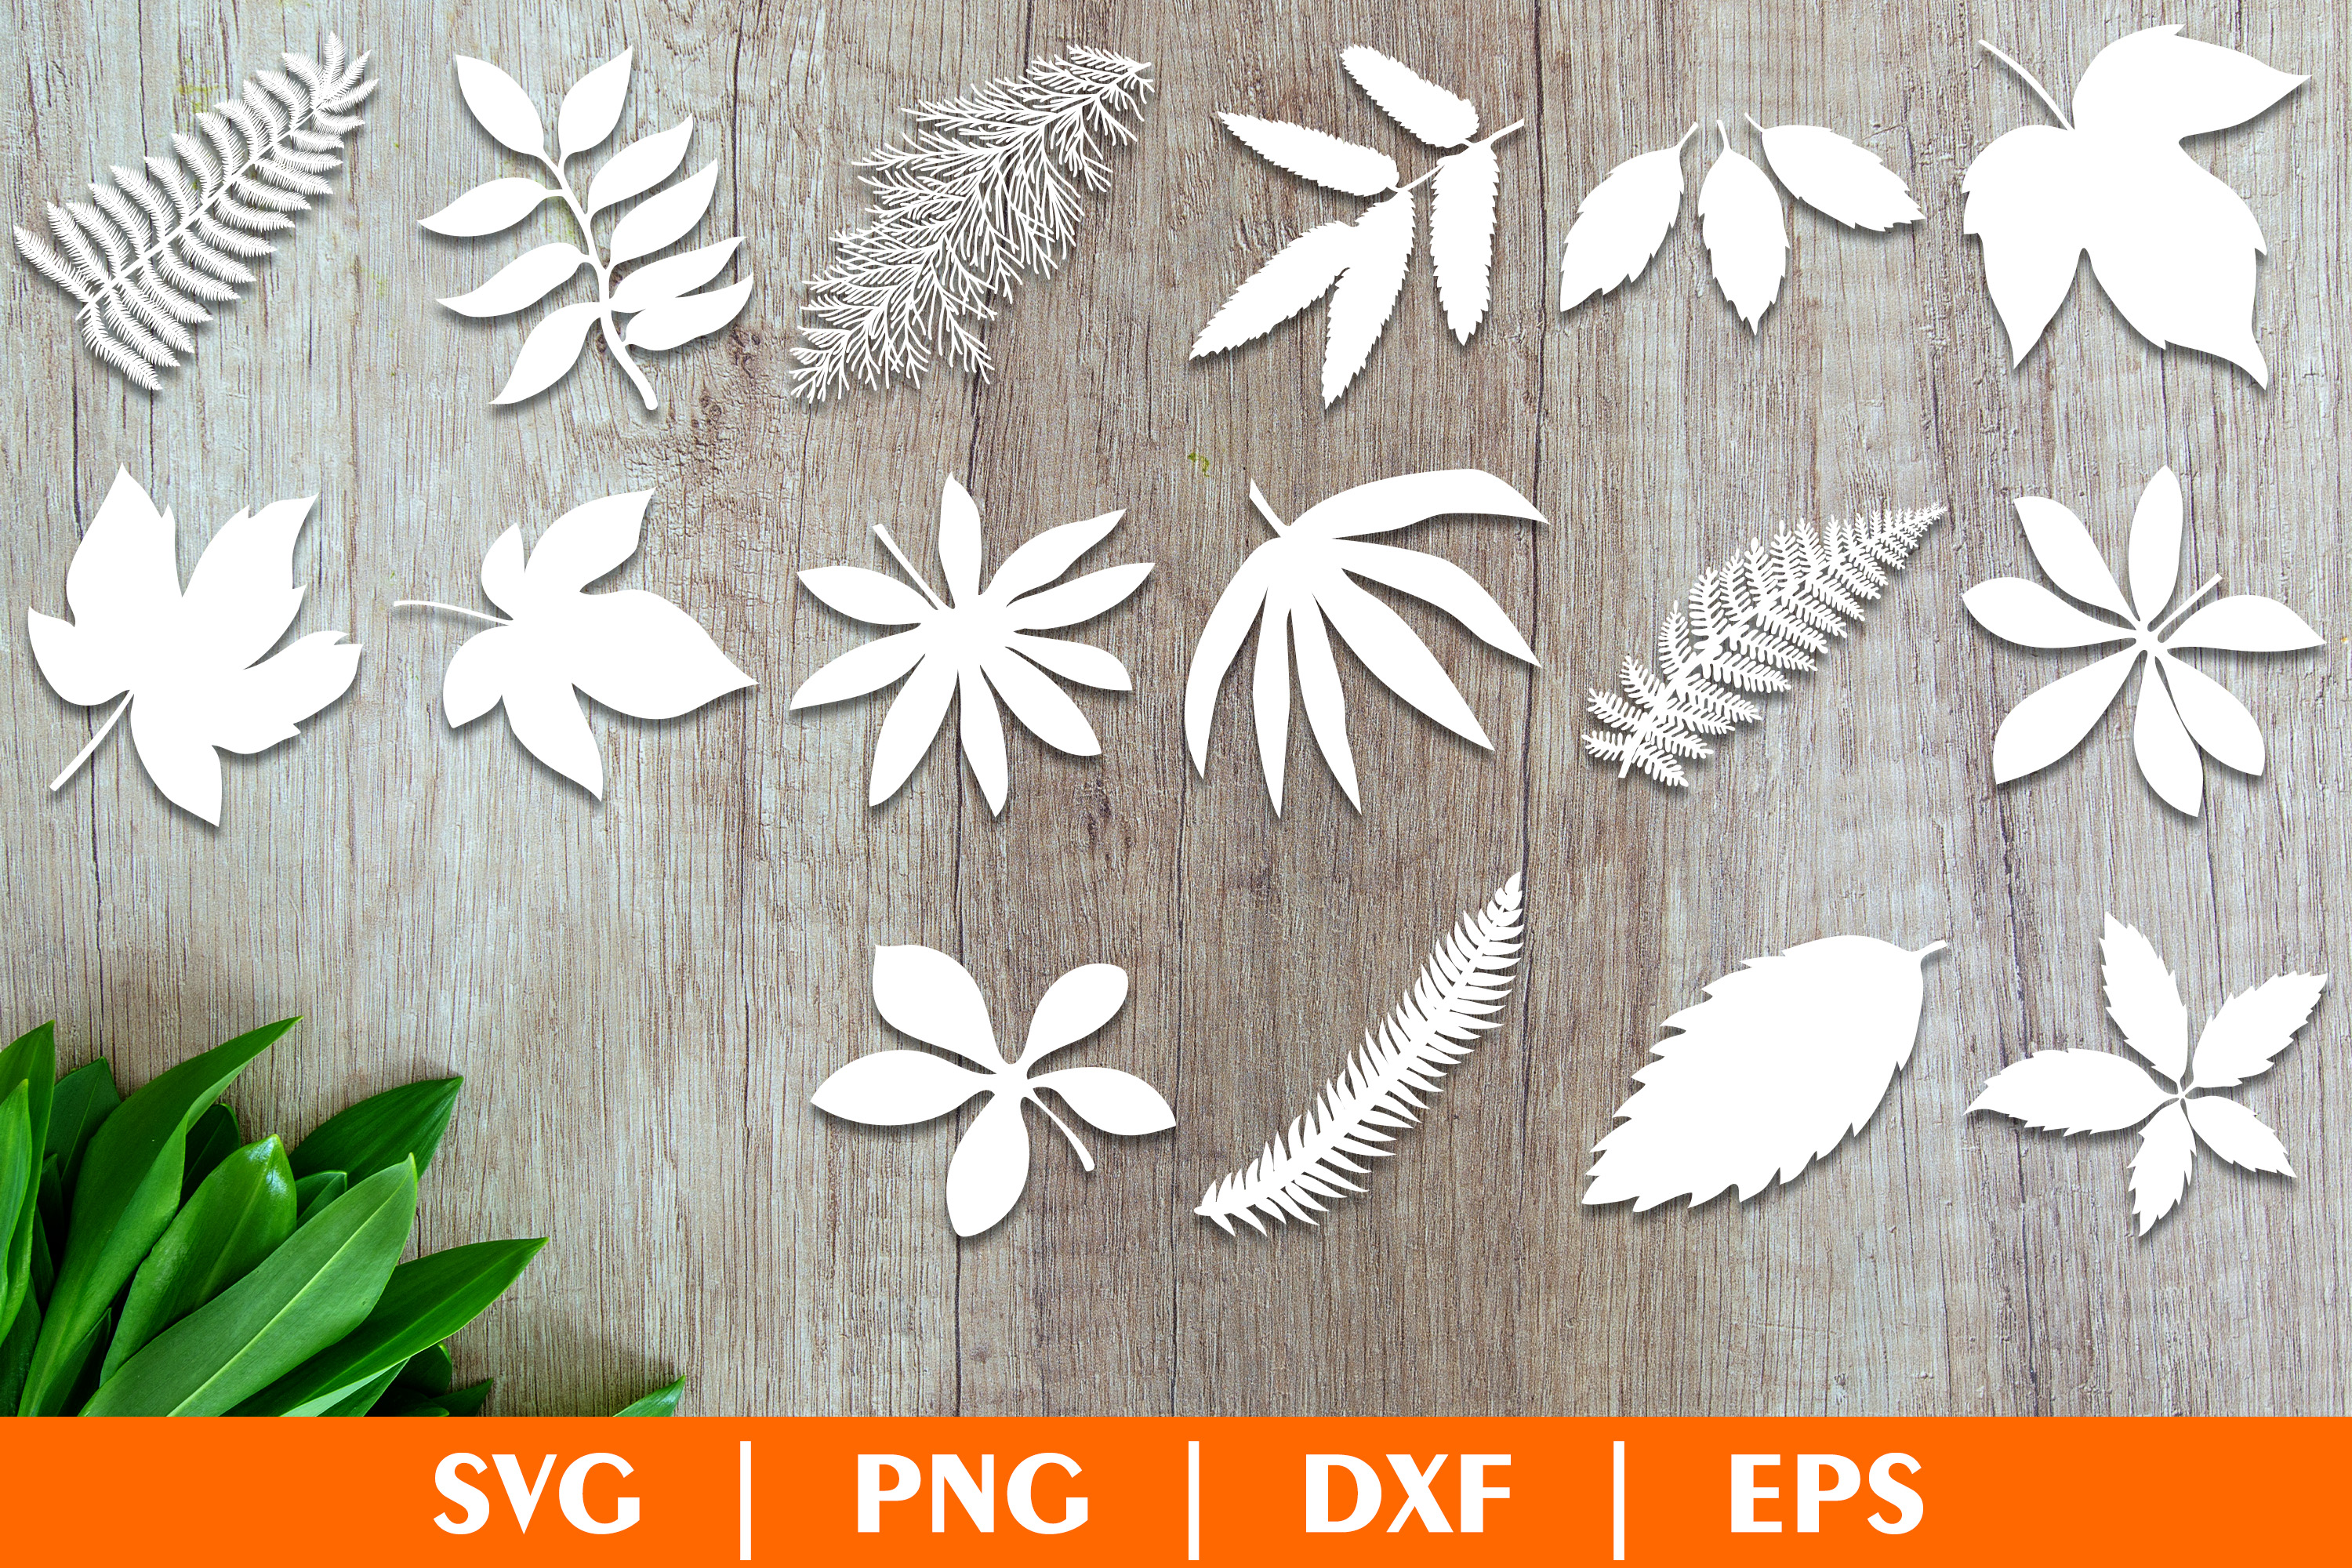 Tropical Leaves Leaves Template Graphic By Julimur2020 Creative Fabrica Free vector icons in svg, psd, png, eps and icon font. tropical leaves leaves template